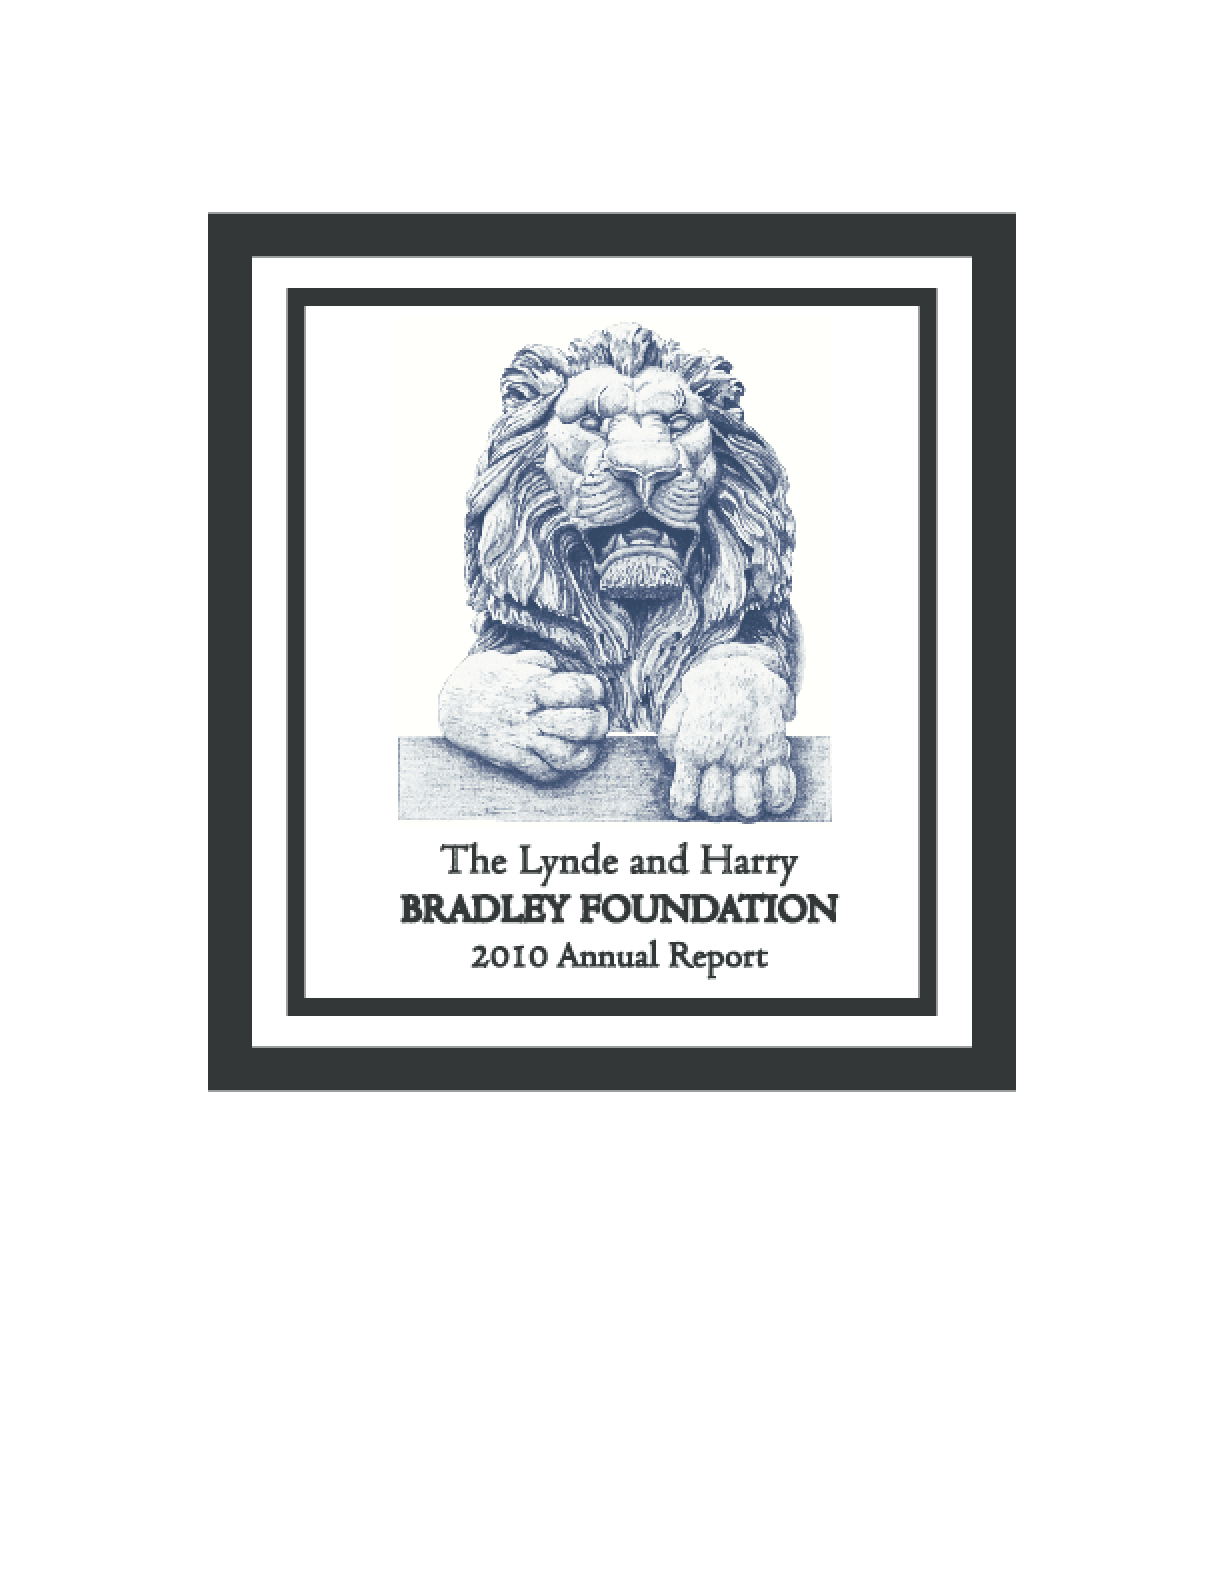 Lynde and Harry Bradley Foundation, Inc. 2010 Annual Report